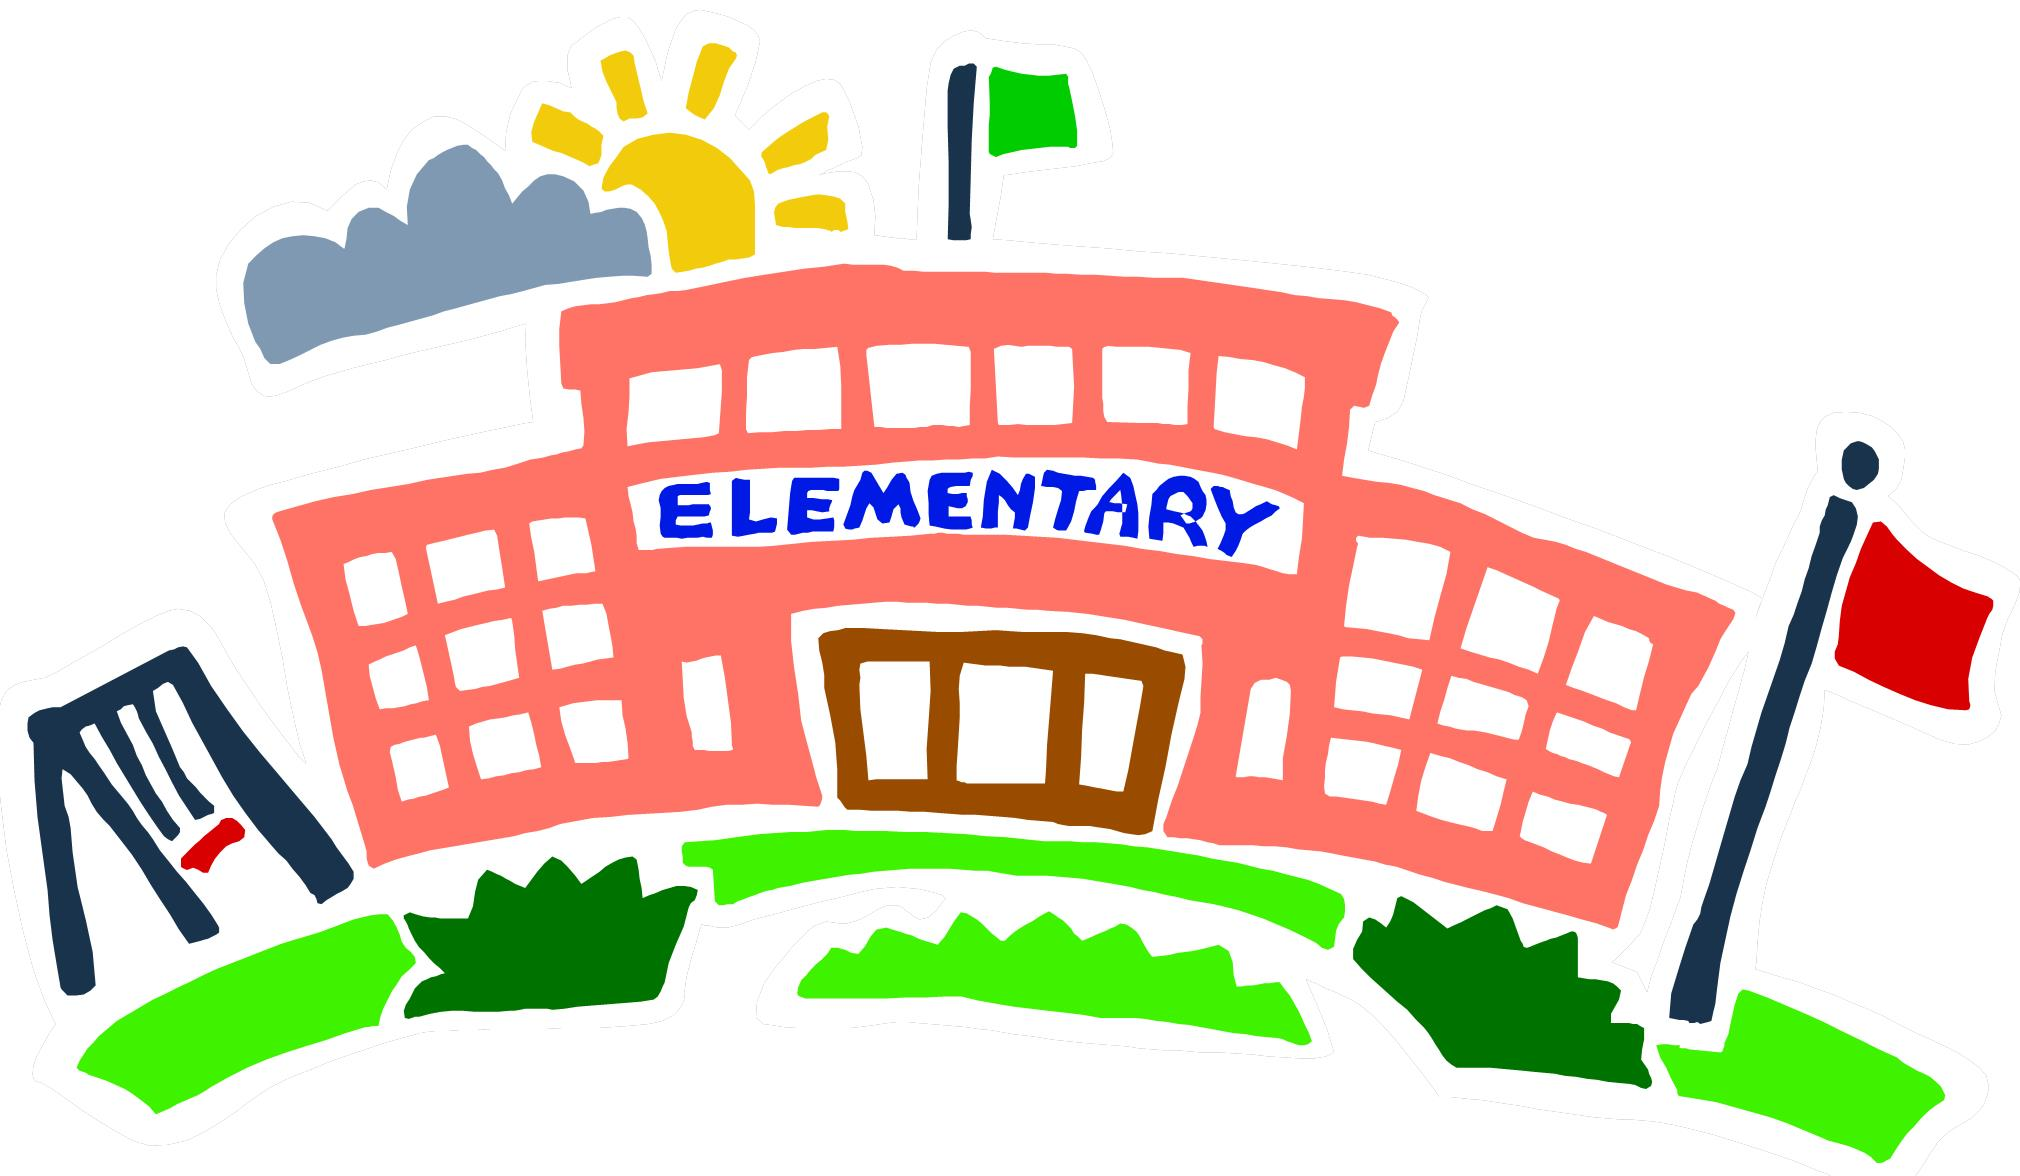 2020x1176 Elementary School Clipart Many Interesting Cliparts